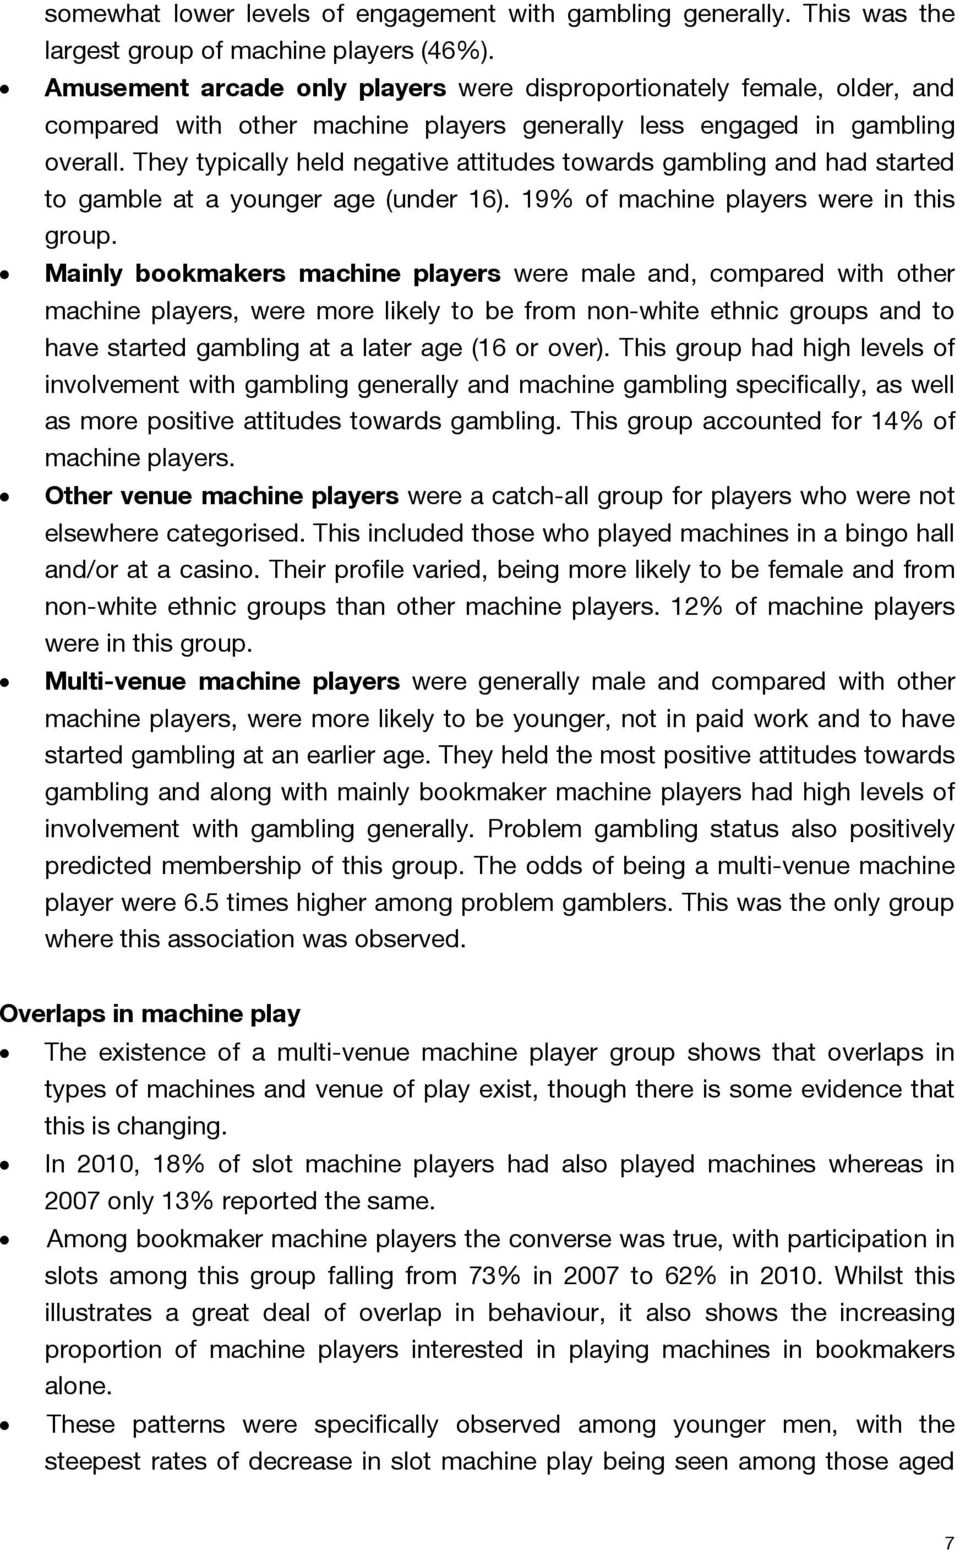 They typically held negative attitudes towards gambling and had started to gamble at a younger age (under 16). 19% of machine players were in this group.